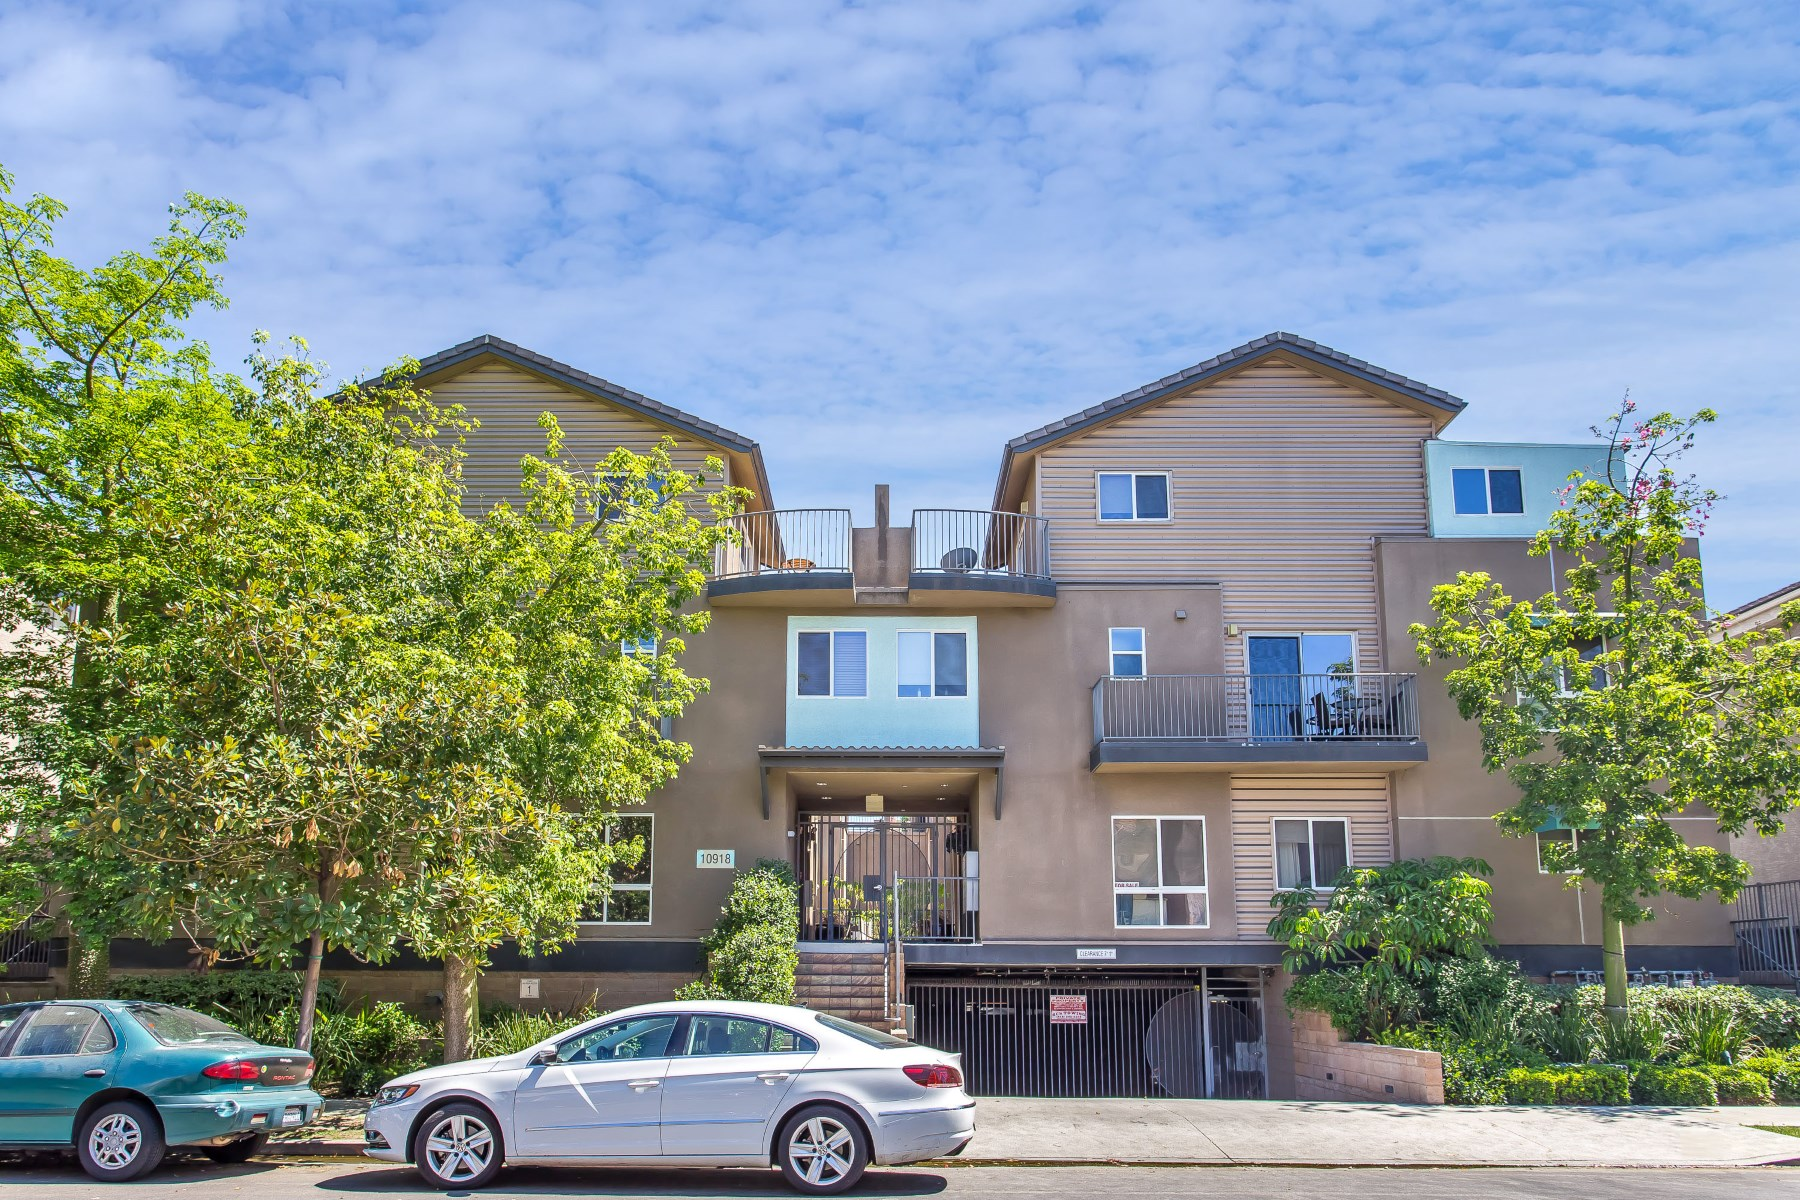 Townhouse for Sale at Spacious Three Story Townhouse North Hollywood, California 91601 United States